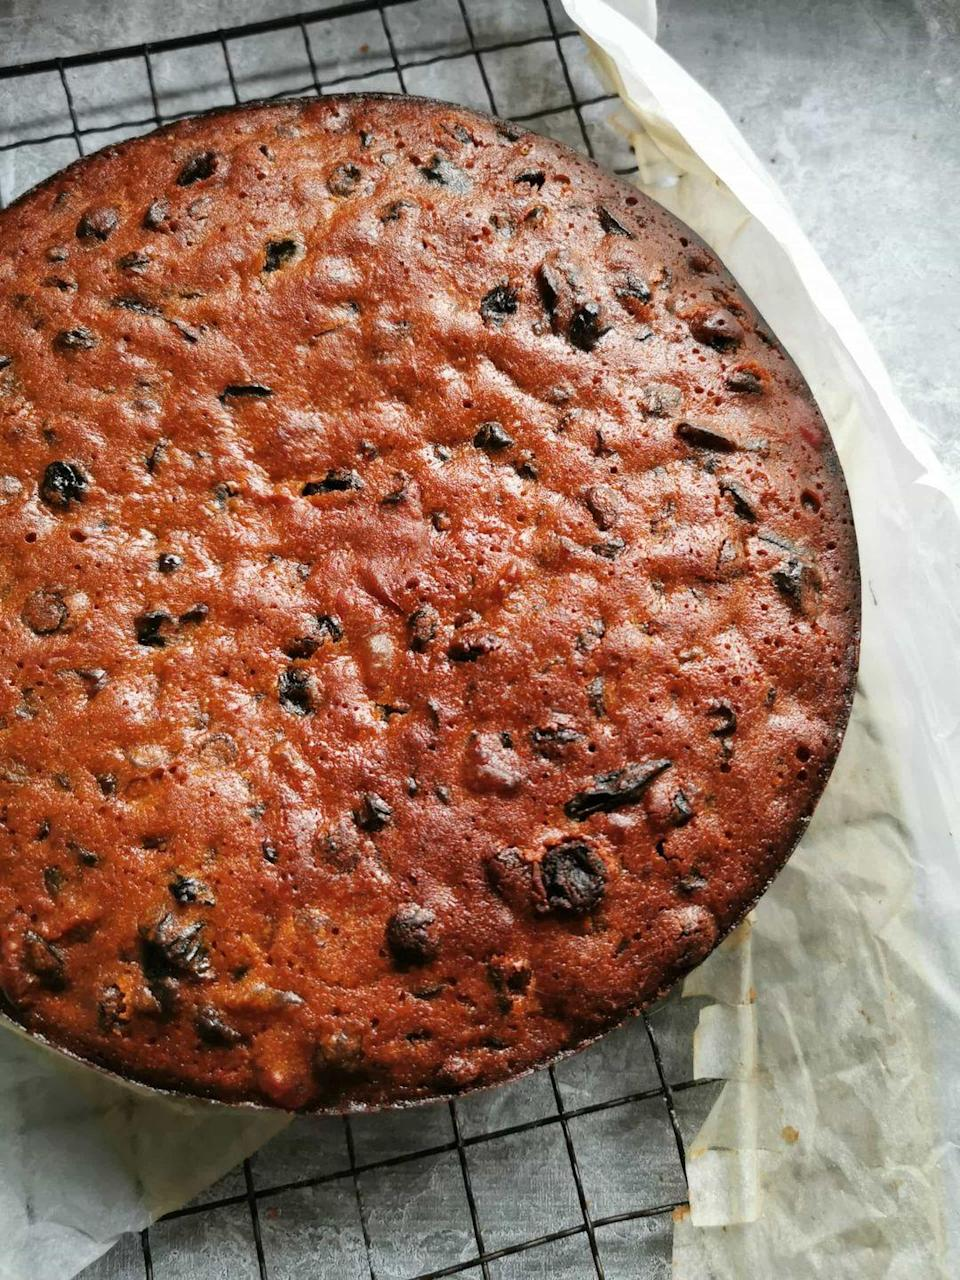 "<p>Top this amaretto-flavored fruitcake with a jam glaze or a thick layer of royal icing for a beautiful finish.</p><p><strong>Get the recipe at <a href=""https://somethingsweetsomethingsavoury.com/amaretto-fruit-cake/"" rel=""nofollow noopener"" target=""_blank"" data-ylk=""slk:Something Sweet Something Savoury"" class=""link rapid-noclick-resp"">Something Sweet Something Savoury</a>.</strong></p><p><strong><strong><a class=""link rapid-noclick-resp"" href=""https://www.amazon.com/Springform-set%EF%BC%8CNonstick-Leakproof-Cheesecake-MASSUGAR/dp/B07CG6JGJP/ref=sr_1_4?tag=syn-yahoo-20&ascsubtag=%5Bartid%7C10050.g.3610%5Bsrc%7Cyahoo-us"" rel=""nofollow noopener"" target=""_blank"" data-ylk=""slk:SHOP CAKE PANS"">SHOP CAKE PANS</a></strong><br></strong></p>"